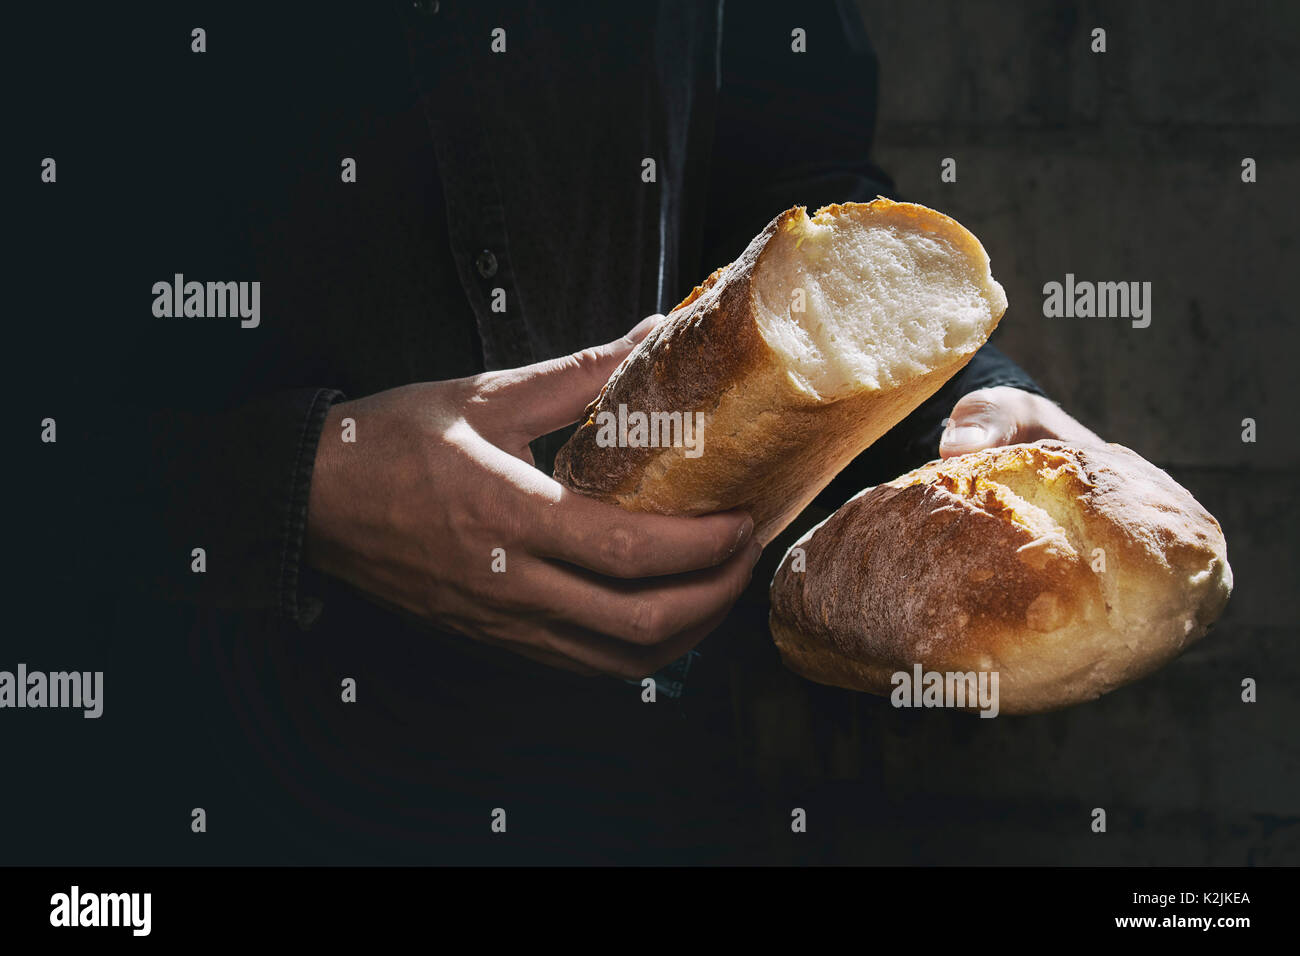 Loaf of fresh baked wheat bread in man's hands in sunshine. Rustic day light in dark room. Toned image - Stock Image